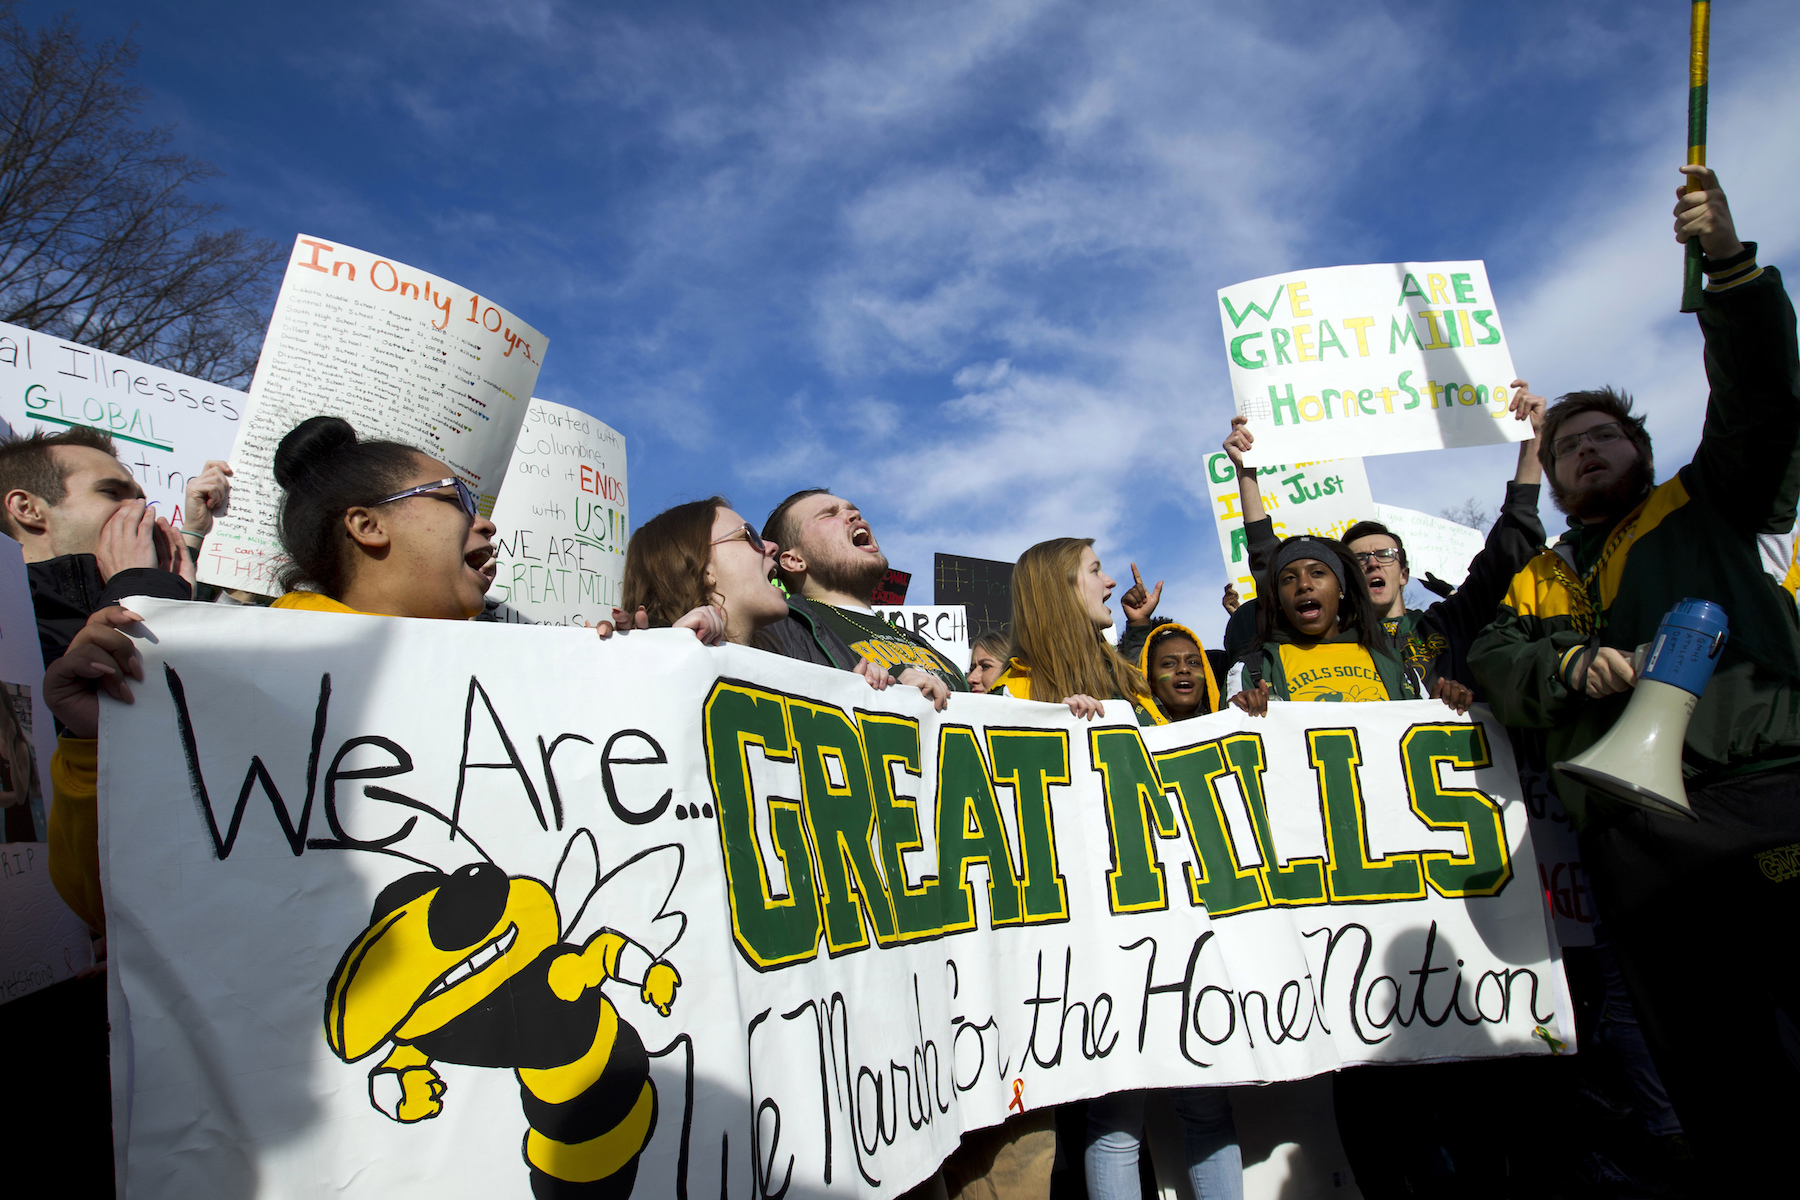 <div class='meta'><div class='origin-logo' data-origin='AP'></div><span class='caption-text' data-credit='AP Photo/Jose Luis Magana'>Students from Great Mills High School of Maryland, protest during the &#34;€œMarch for Our Lives&#34; rally in support of gun control in Washington.</span></div>